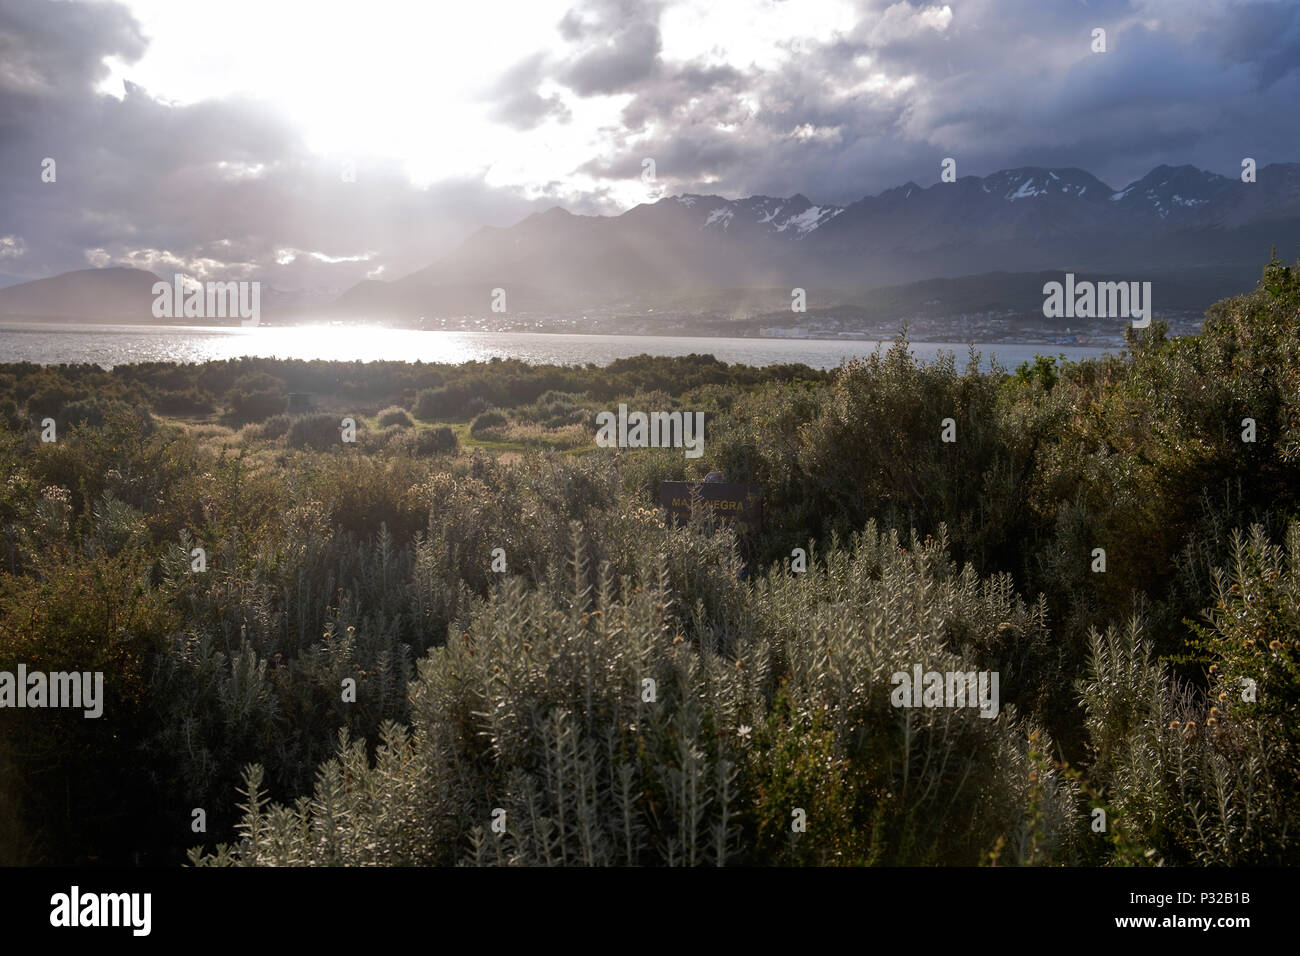 The sun enlightens Ushuaia in the distance and the plants at Playa Larga in the foreground. Ushuaia lies in a strongly cloudy region. Stock Photo